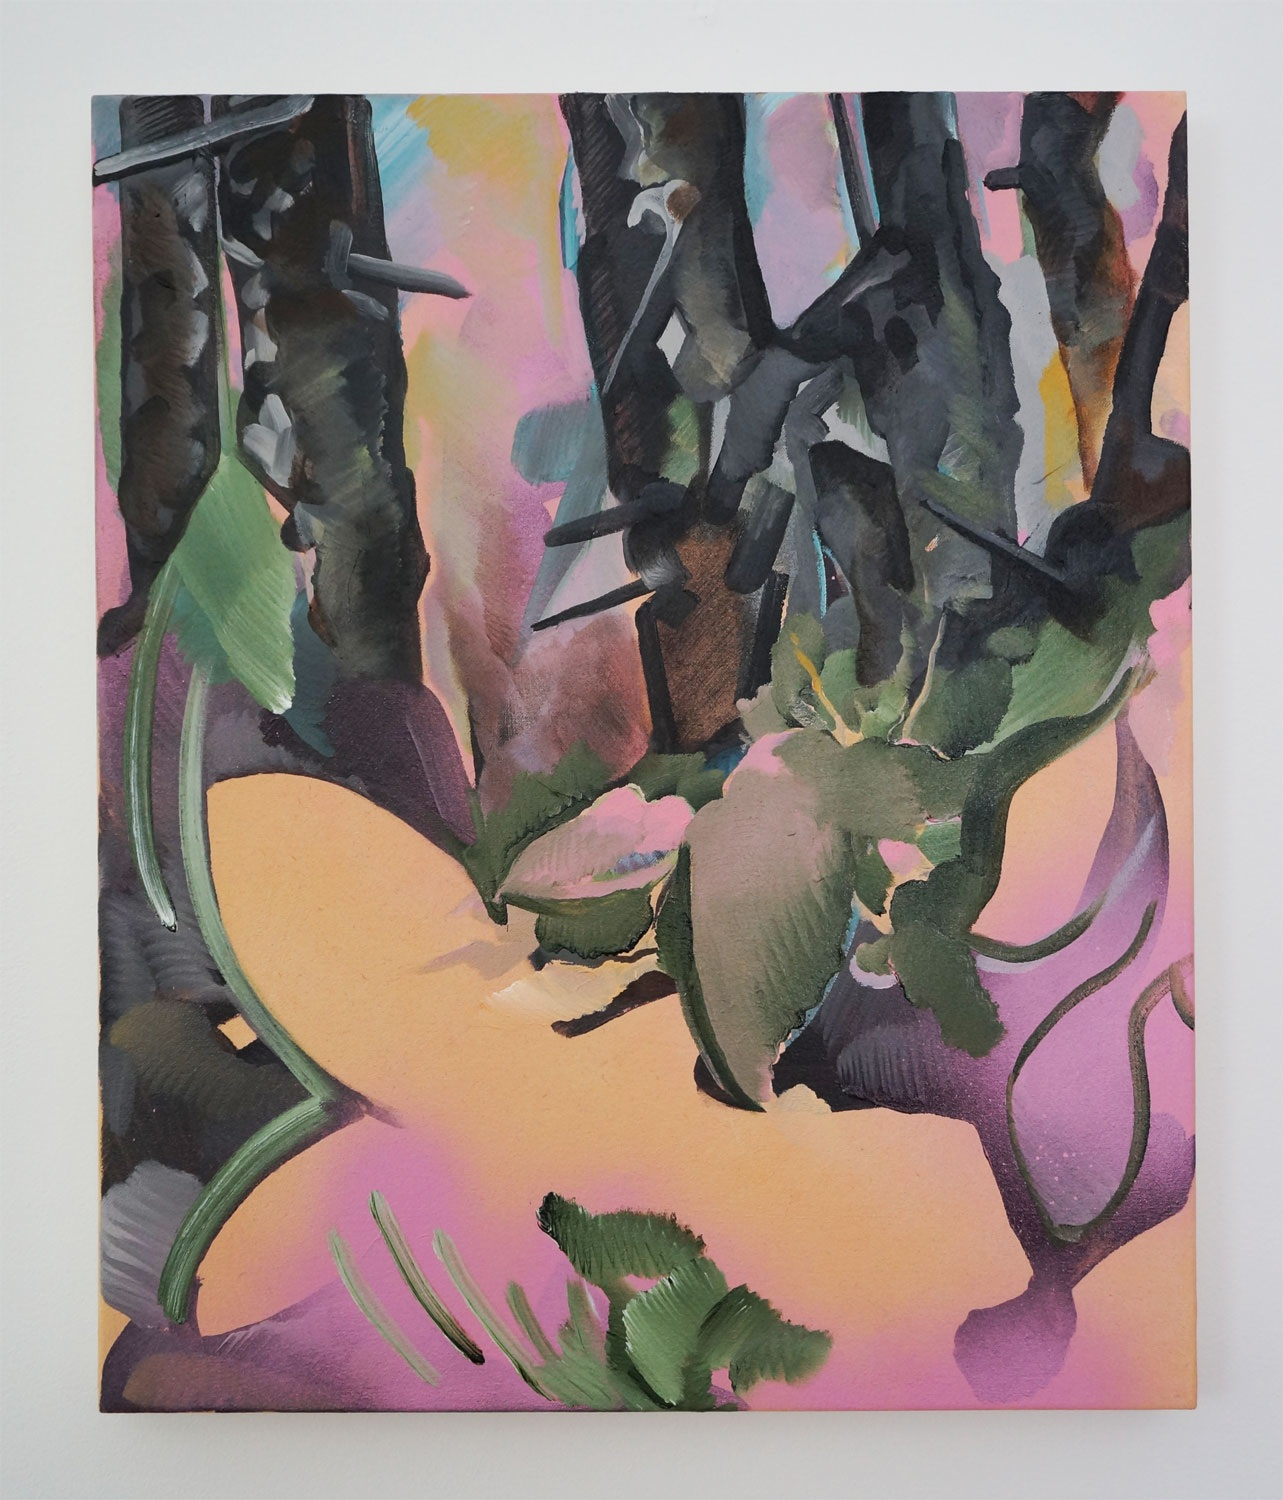 Understory, 2018, acrylic on canvas, 24x20in